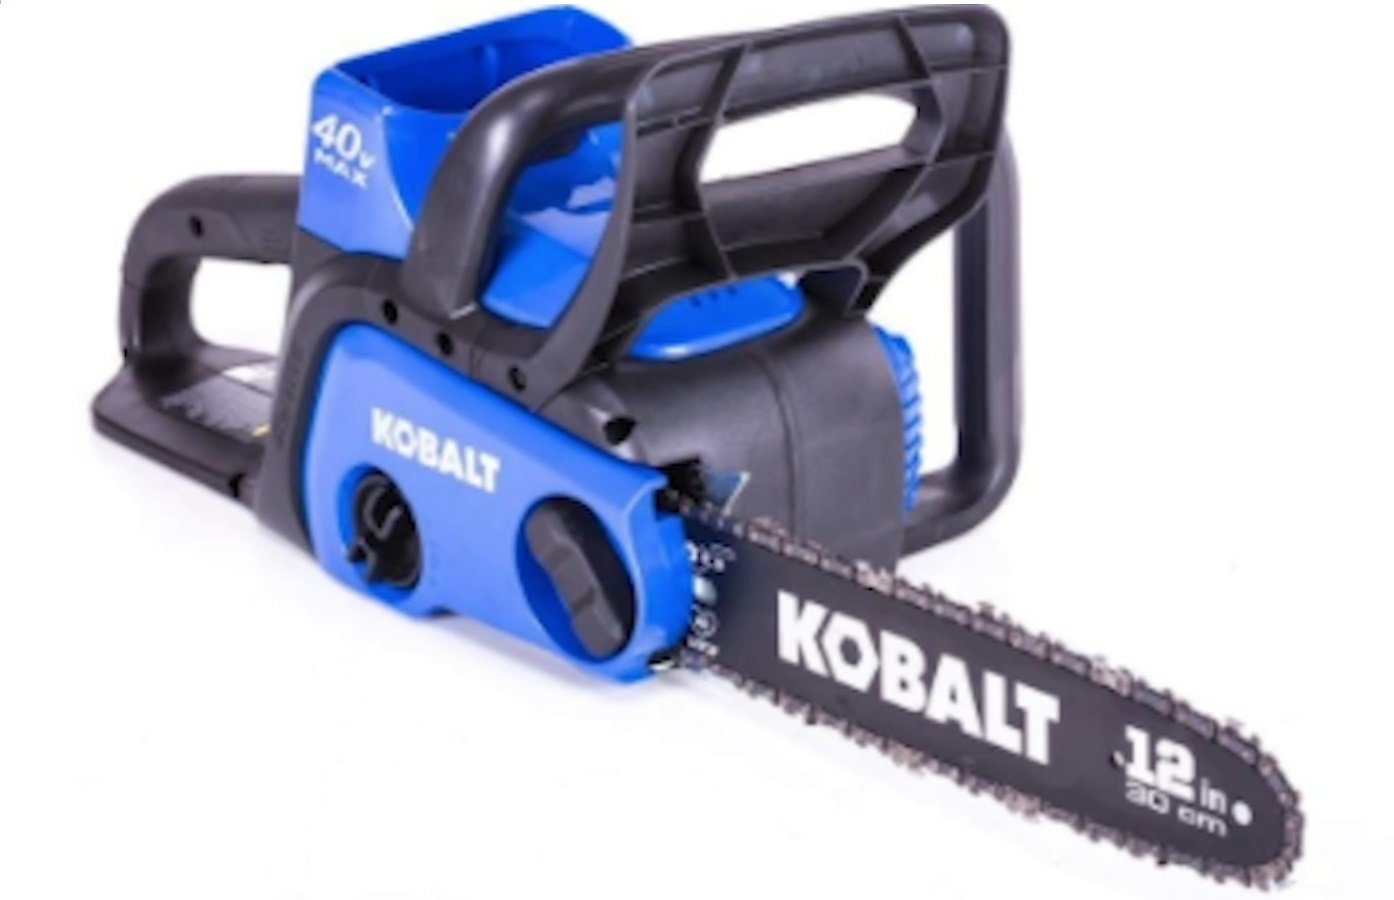 Lowe's Recalling This Cordless Electric Chainsaw Due to Laceration Hazard